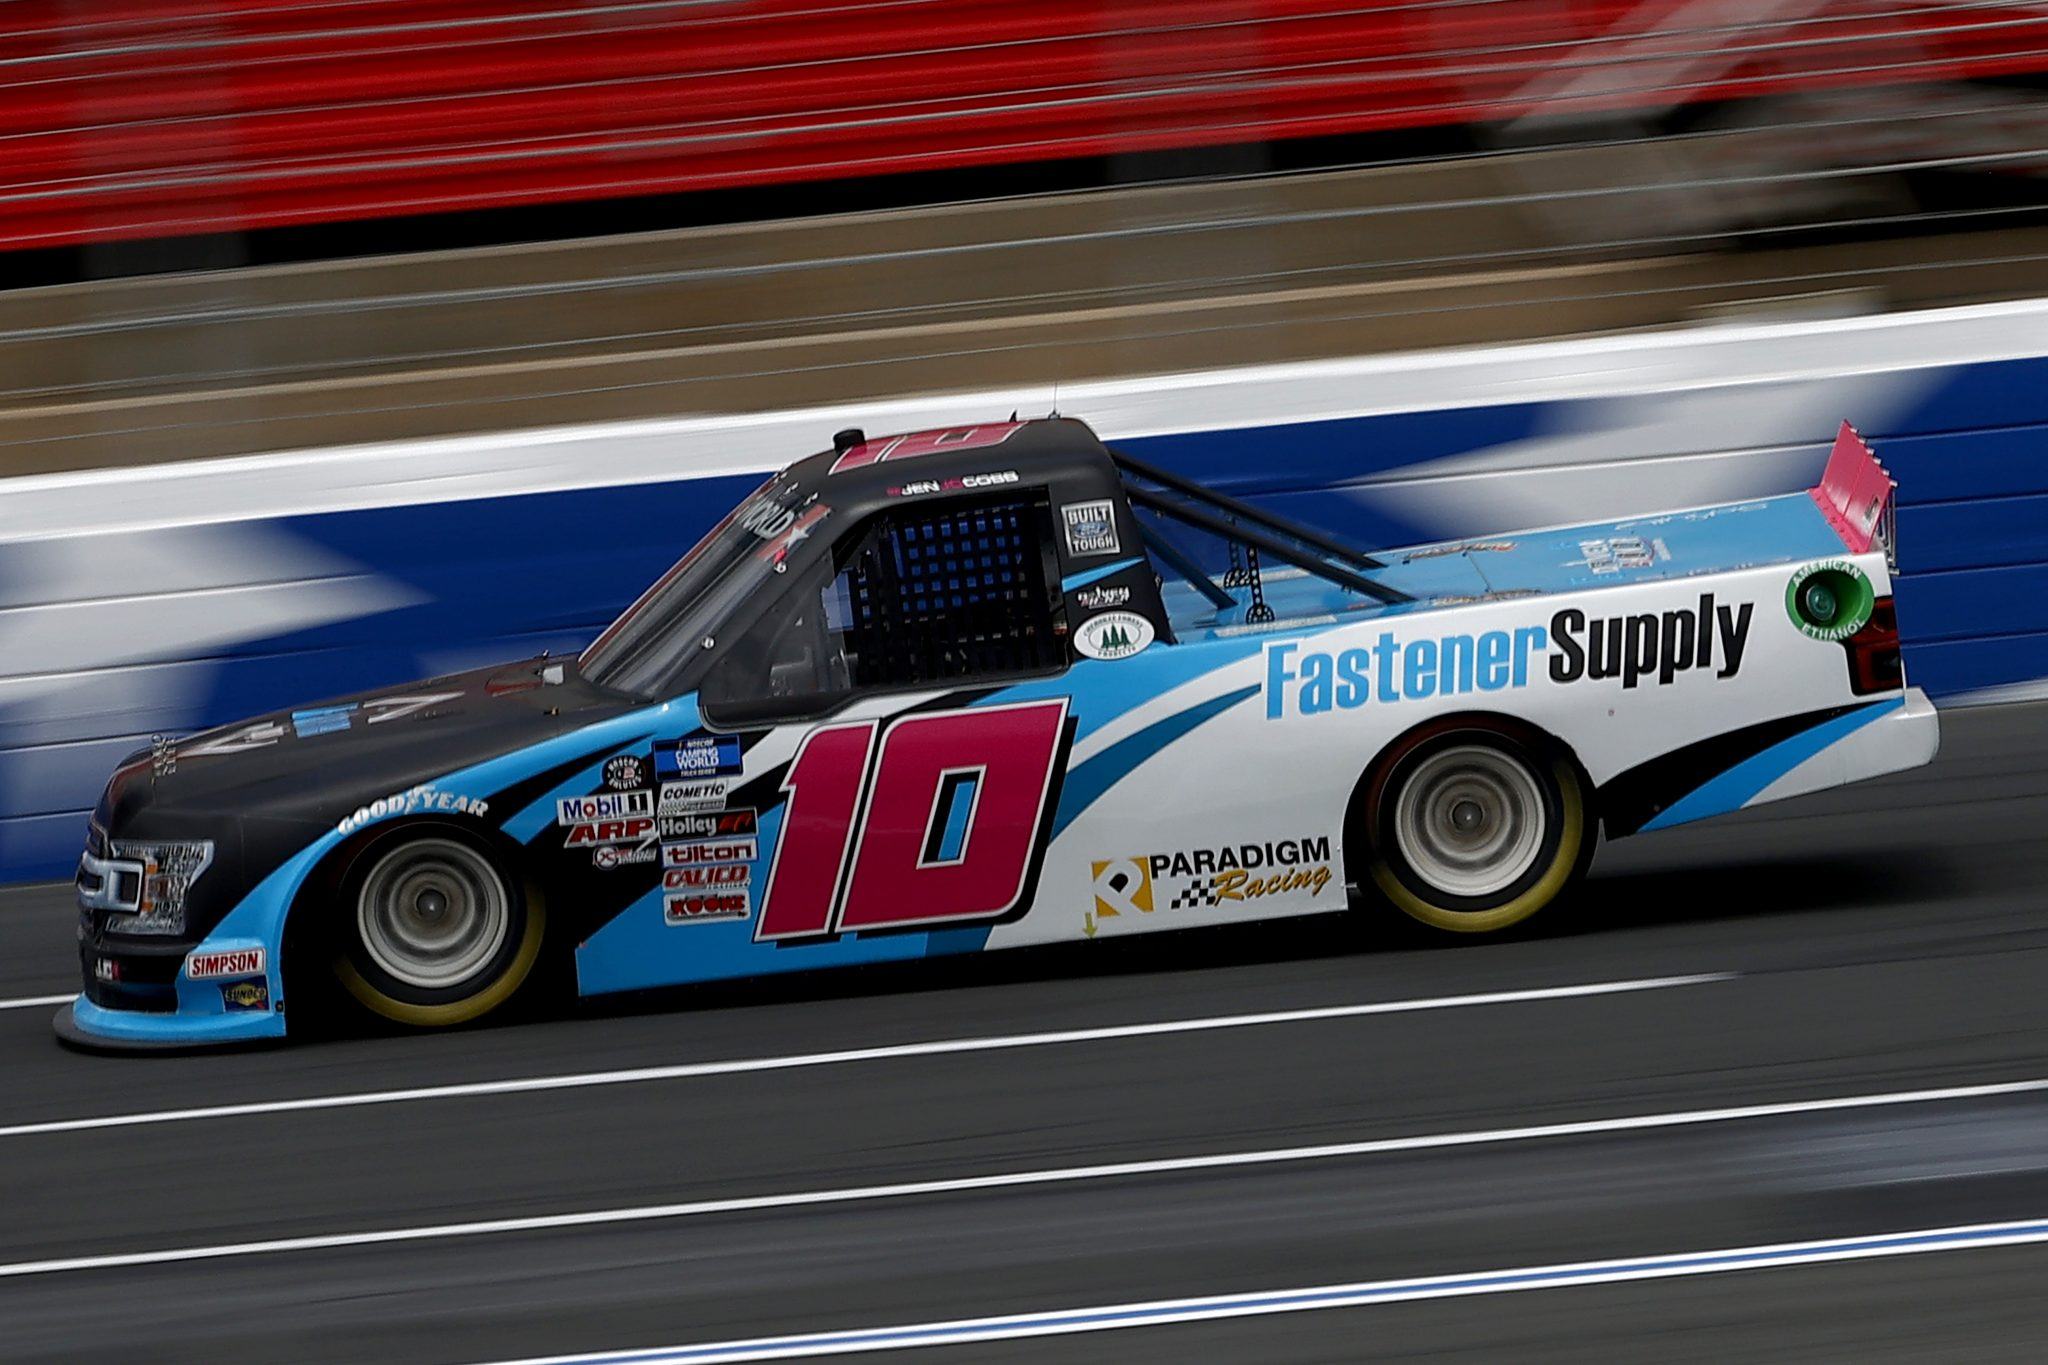 CONCORD, NORTH CAROLINA - MAY 28: Jennifer Jo Cobb, driver of the #10 Fastener Supply Company Chevrolet, drives during practice for the NASCAR Camping World Truck Series North Carolina Education Lottery 200 at Charlotte Motor Speedway on May 28, 2021 in Concord, North Carolina. (Photo by Maddie Meyer/Getty Images)   Getty Images